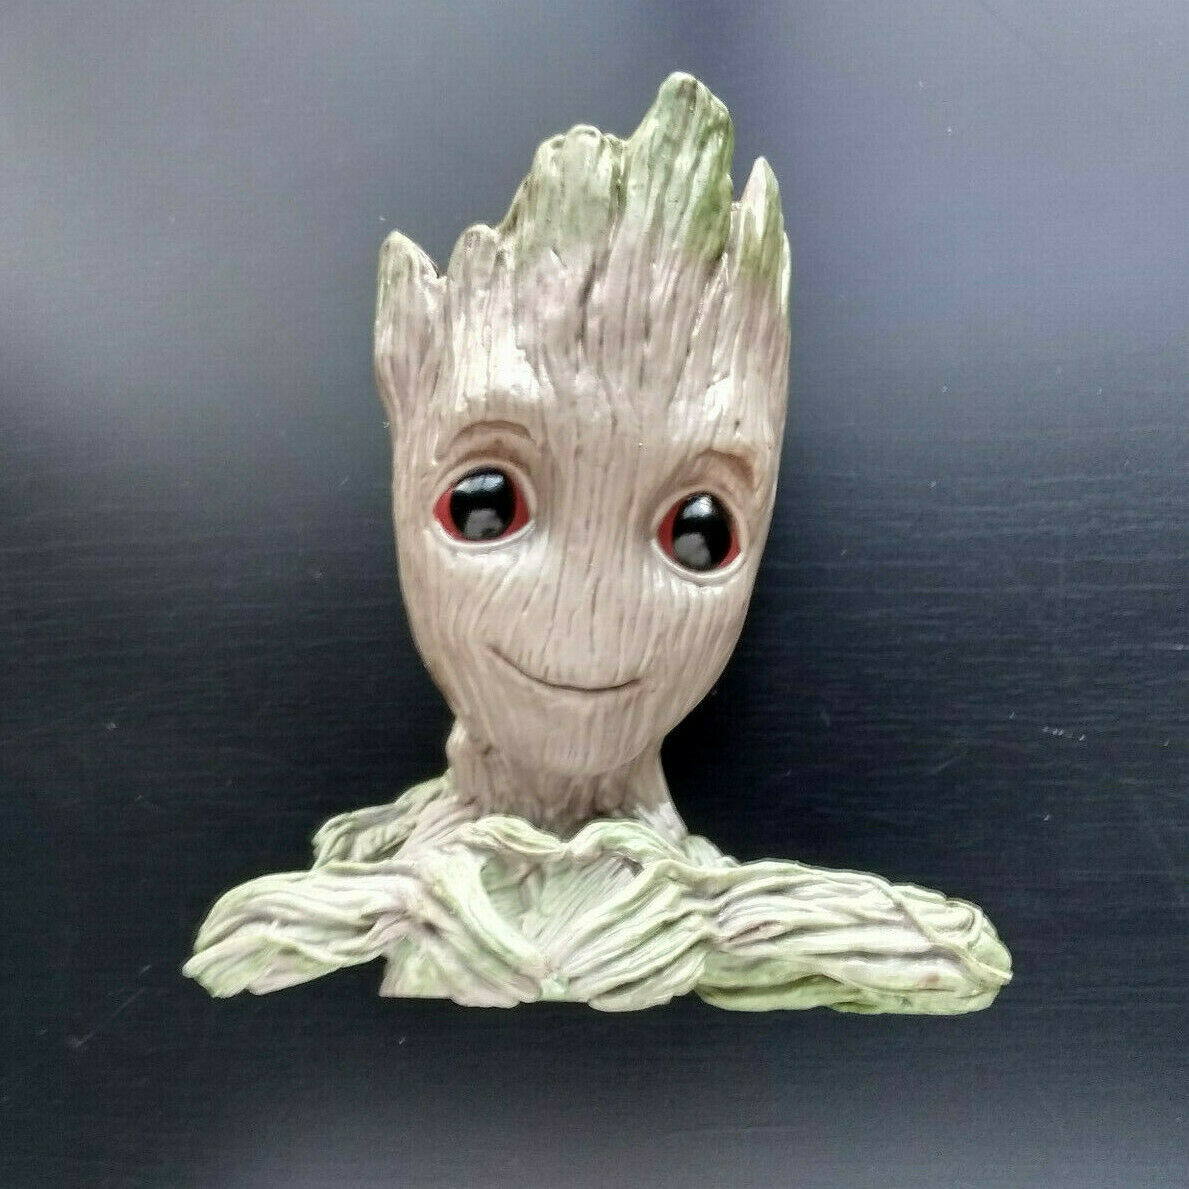 Baby Heart Hands Groot Guardians of the Galaxy Desk Pen Holder Flower Pot Planter Tree Man Love Gift